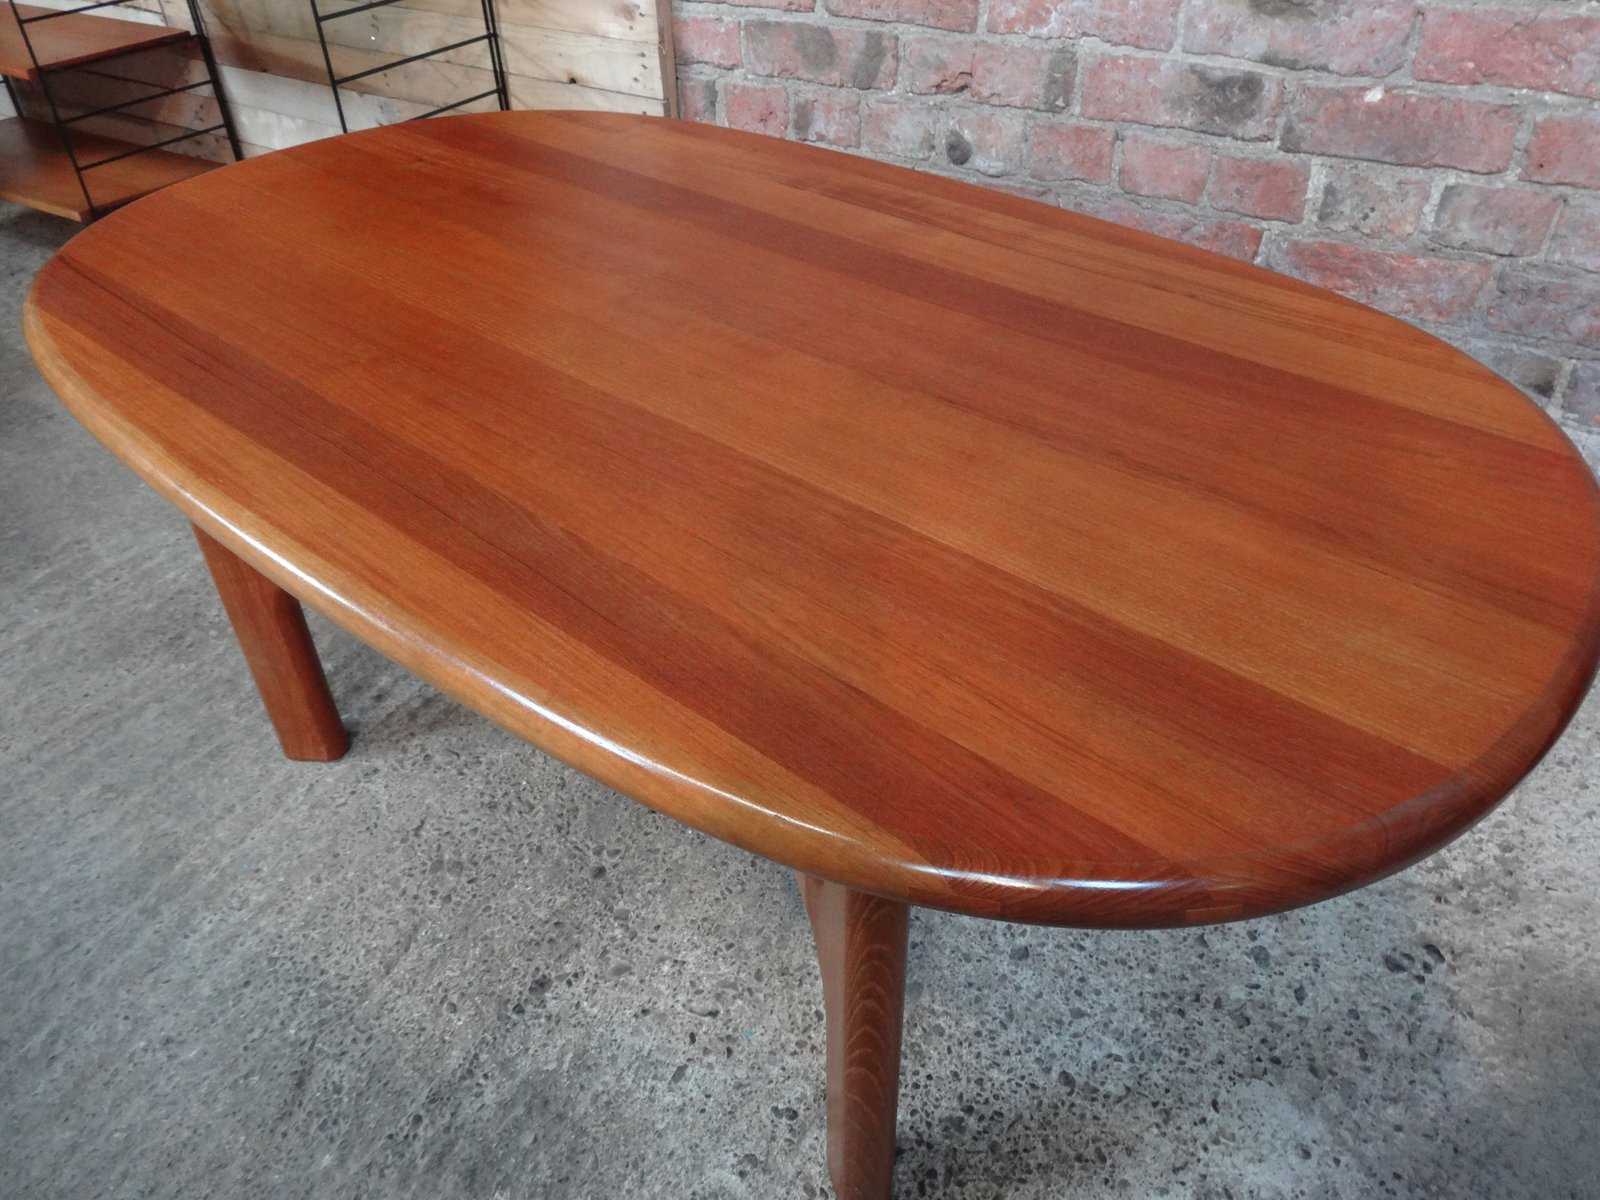 Mid century solid teak coffee table from dyrlund 1970s for sale at pamono Solid teak coffee table